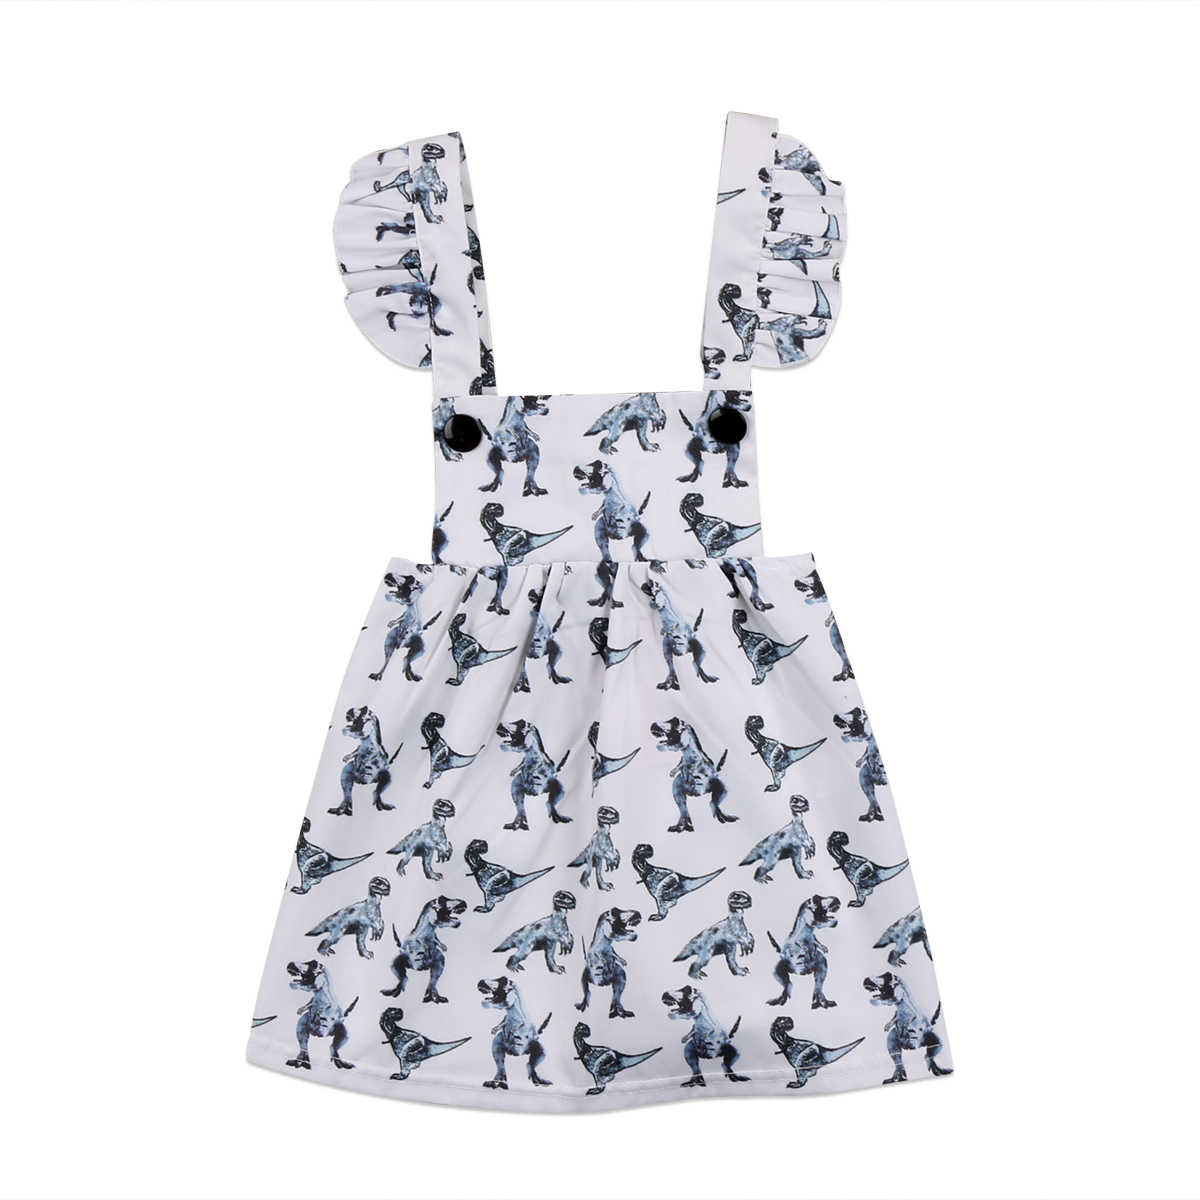 Newborn Baby Girls Dinosaur Sleeveless Dress Clothes Outfits Sundress Summer